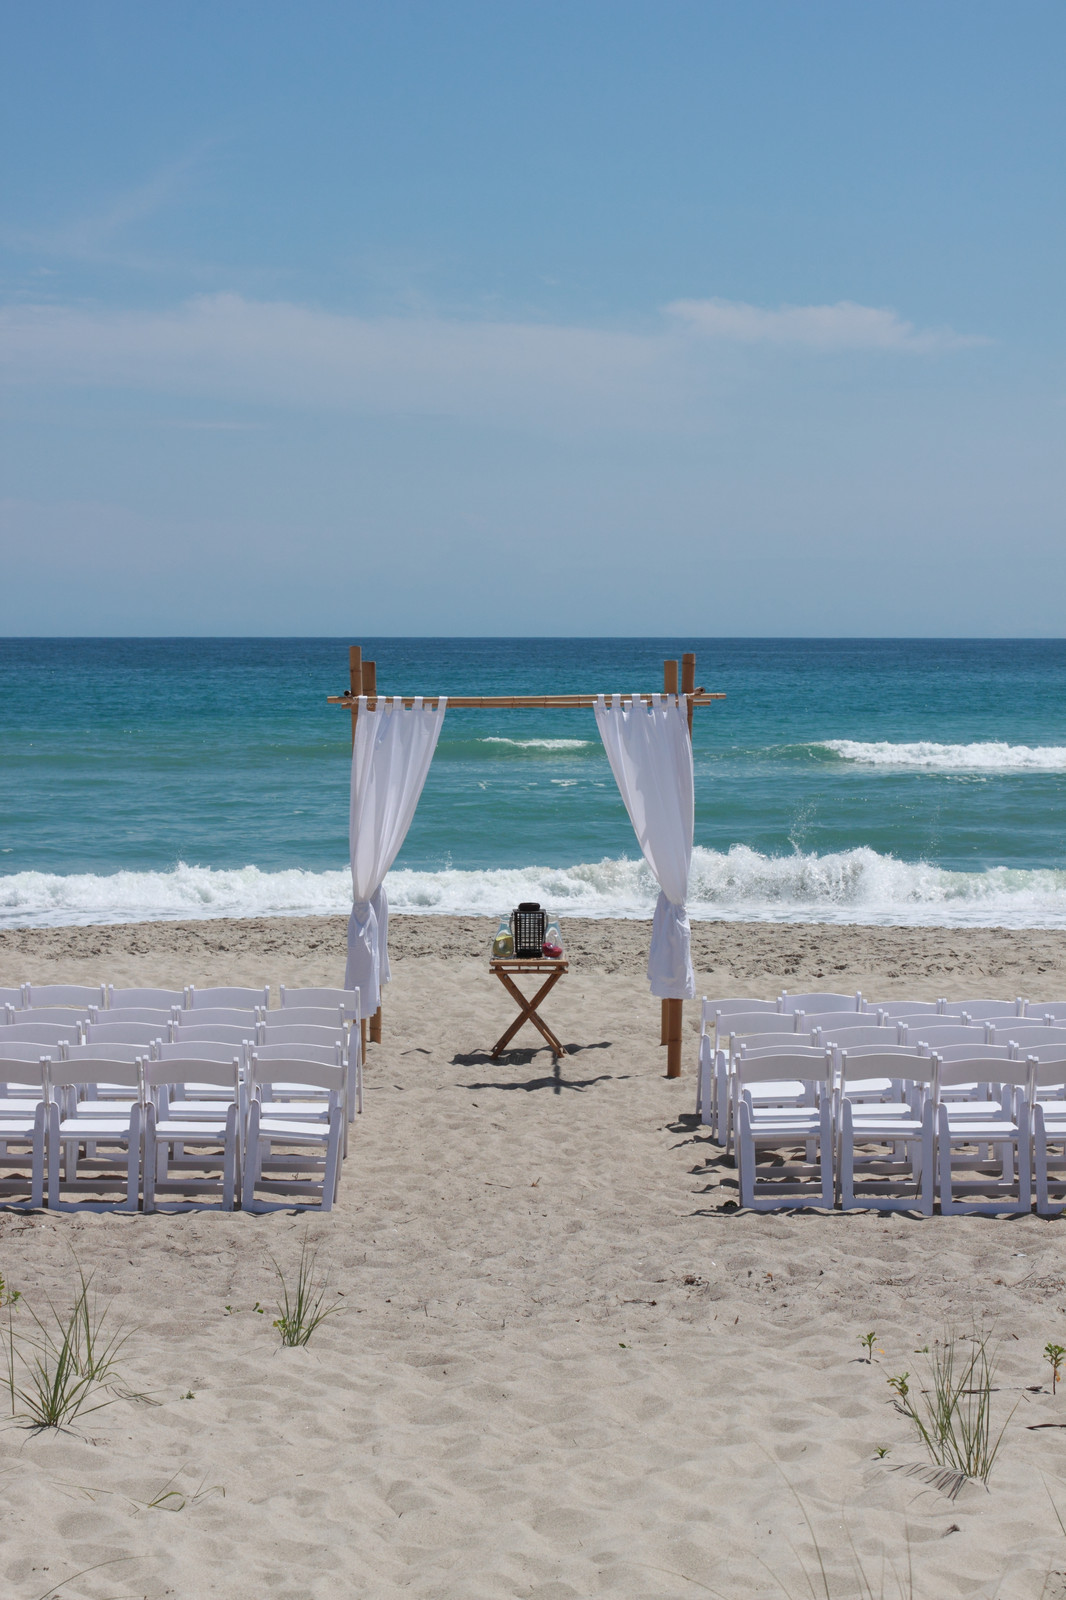 images?q=tbn:ANd9GcQh_l3eQ5xwiPy07kGEXjmjgmBKBRB7H2mRxCGhv1tFWg5c_mWT Awesome Beach Wedding North Carolina Package @job-e-able.info.info